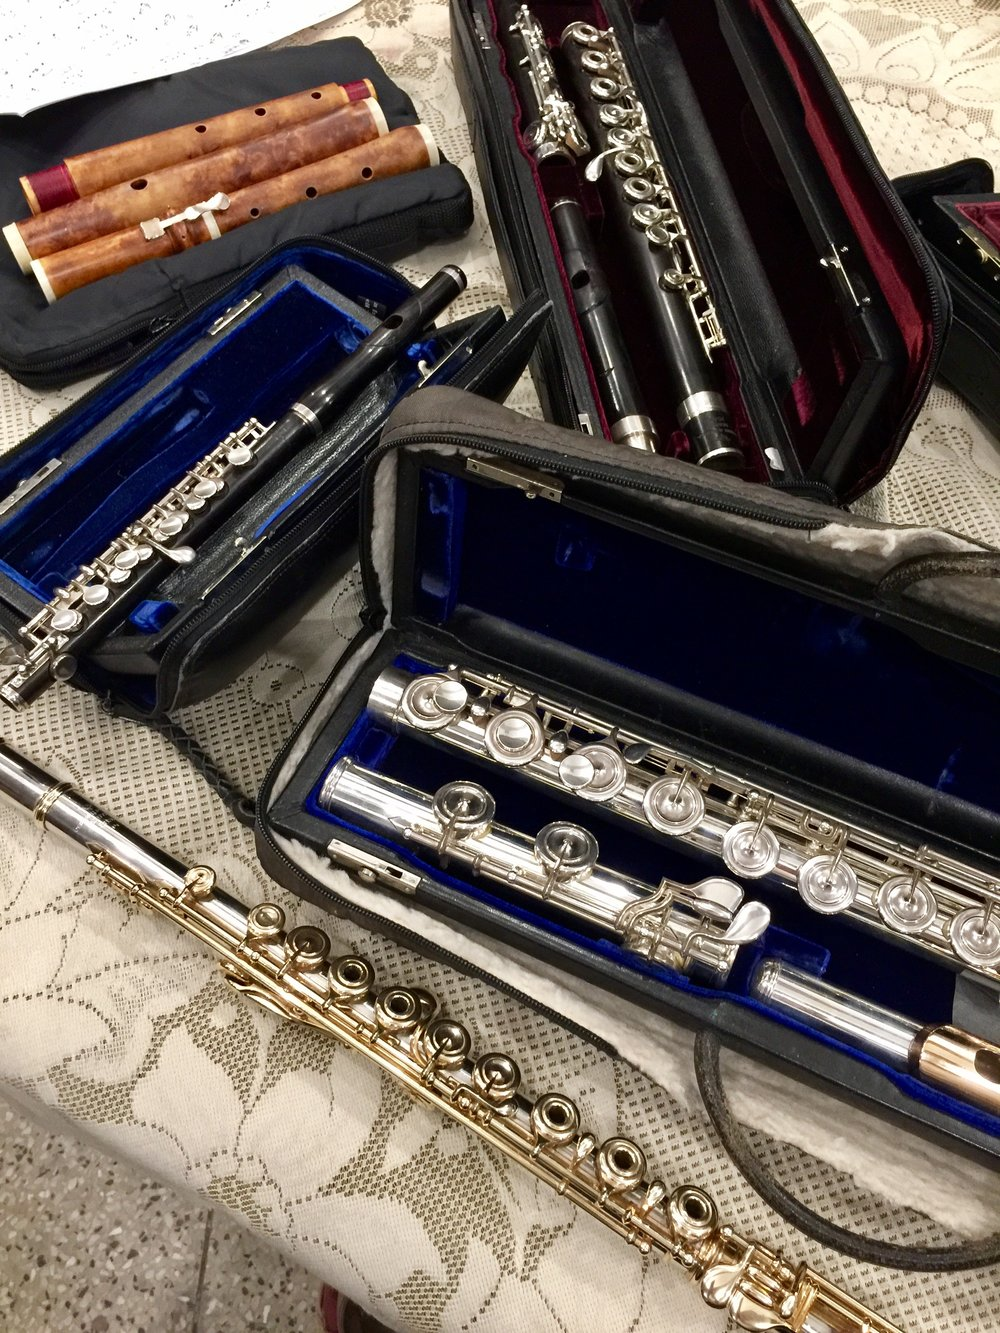 Powell Flutes, unpacked and ready to go, plus a lovely Soubeyran traverso!